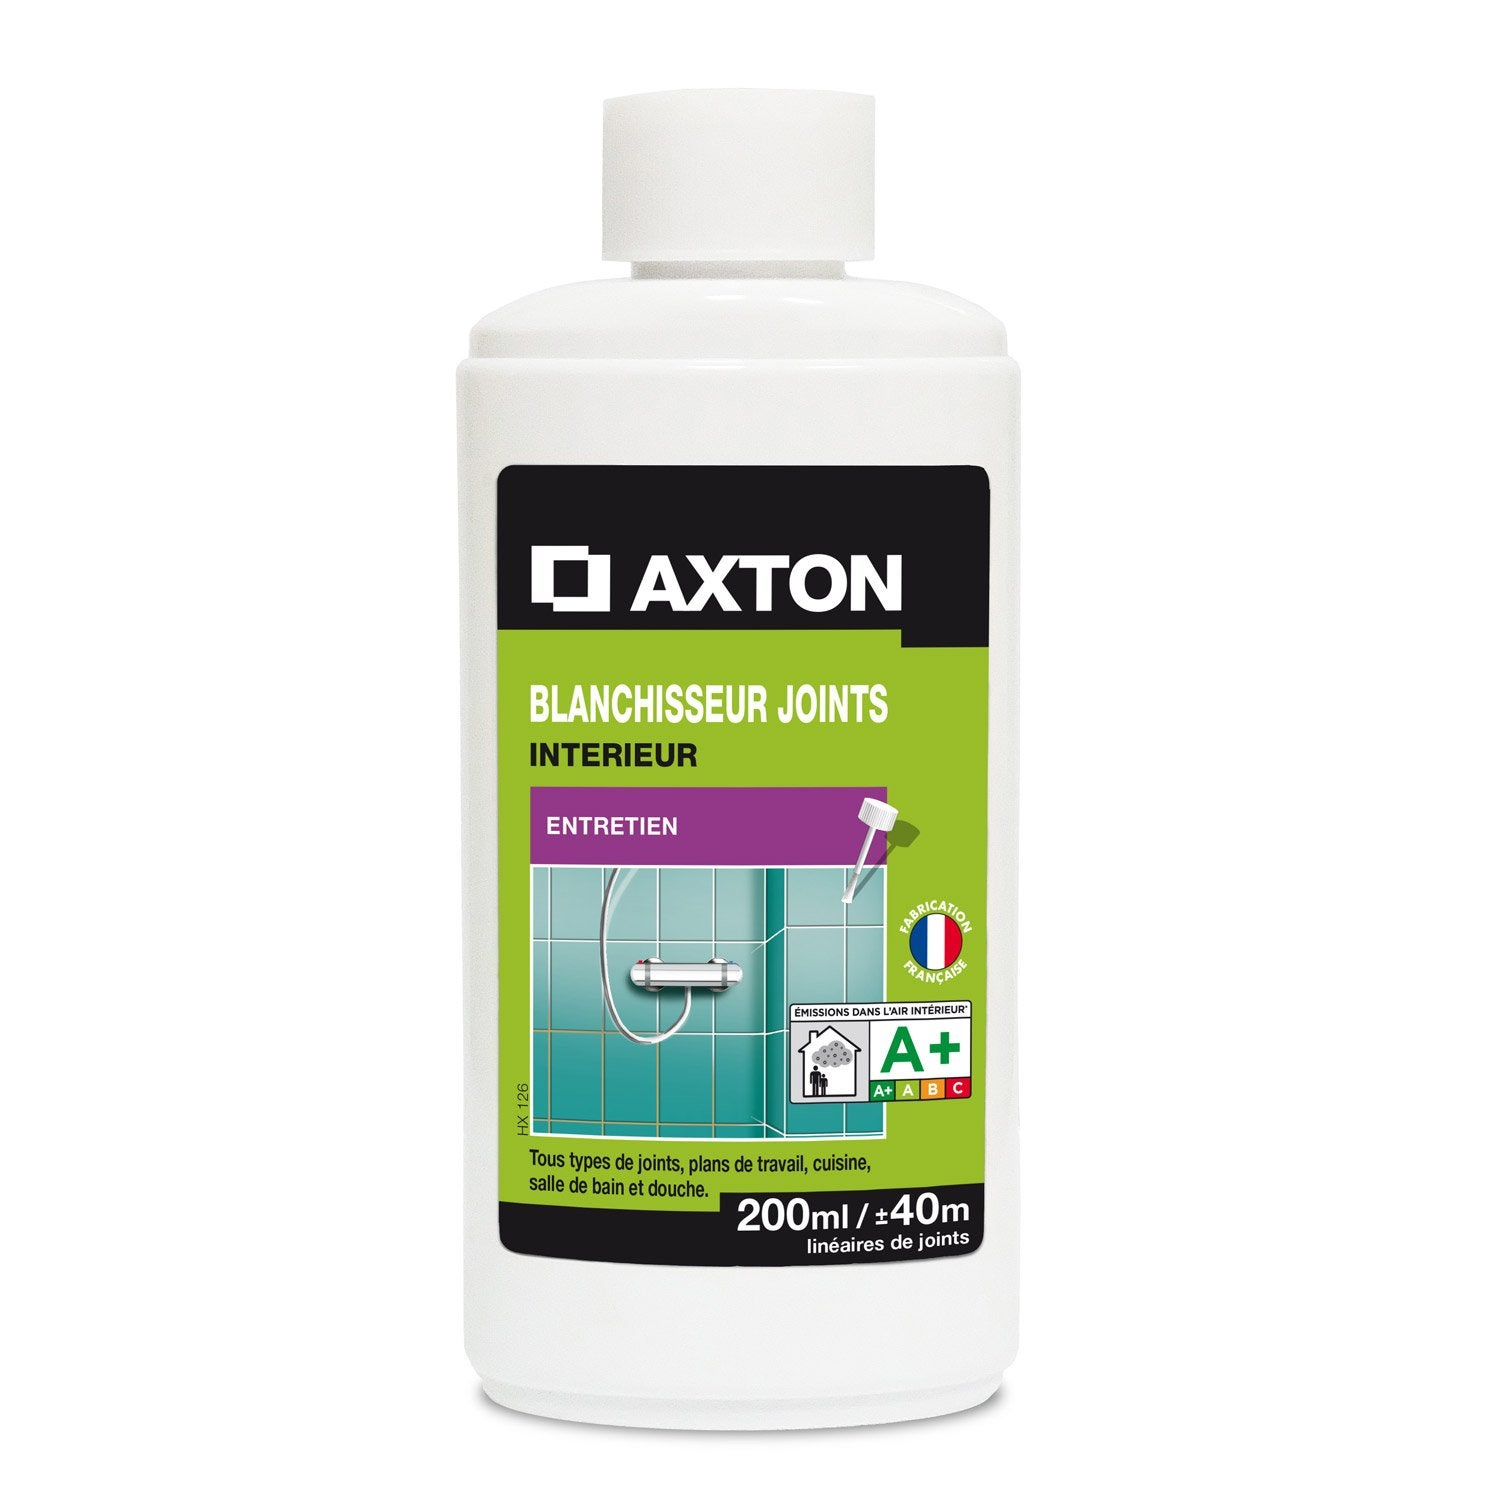 Blanchisseur joints axton 200ml leroy merlin for Impermeabilisant joint carrelage